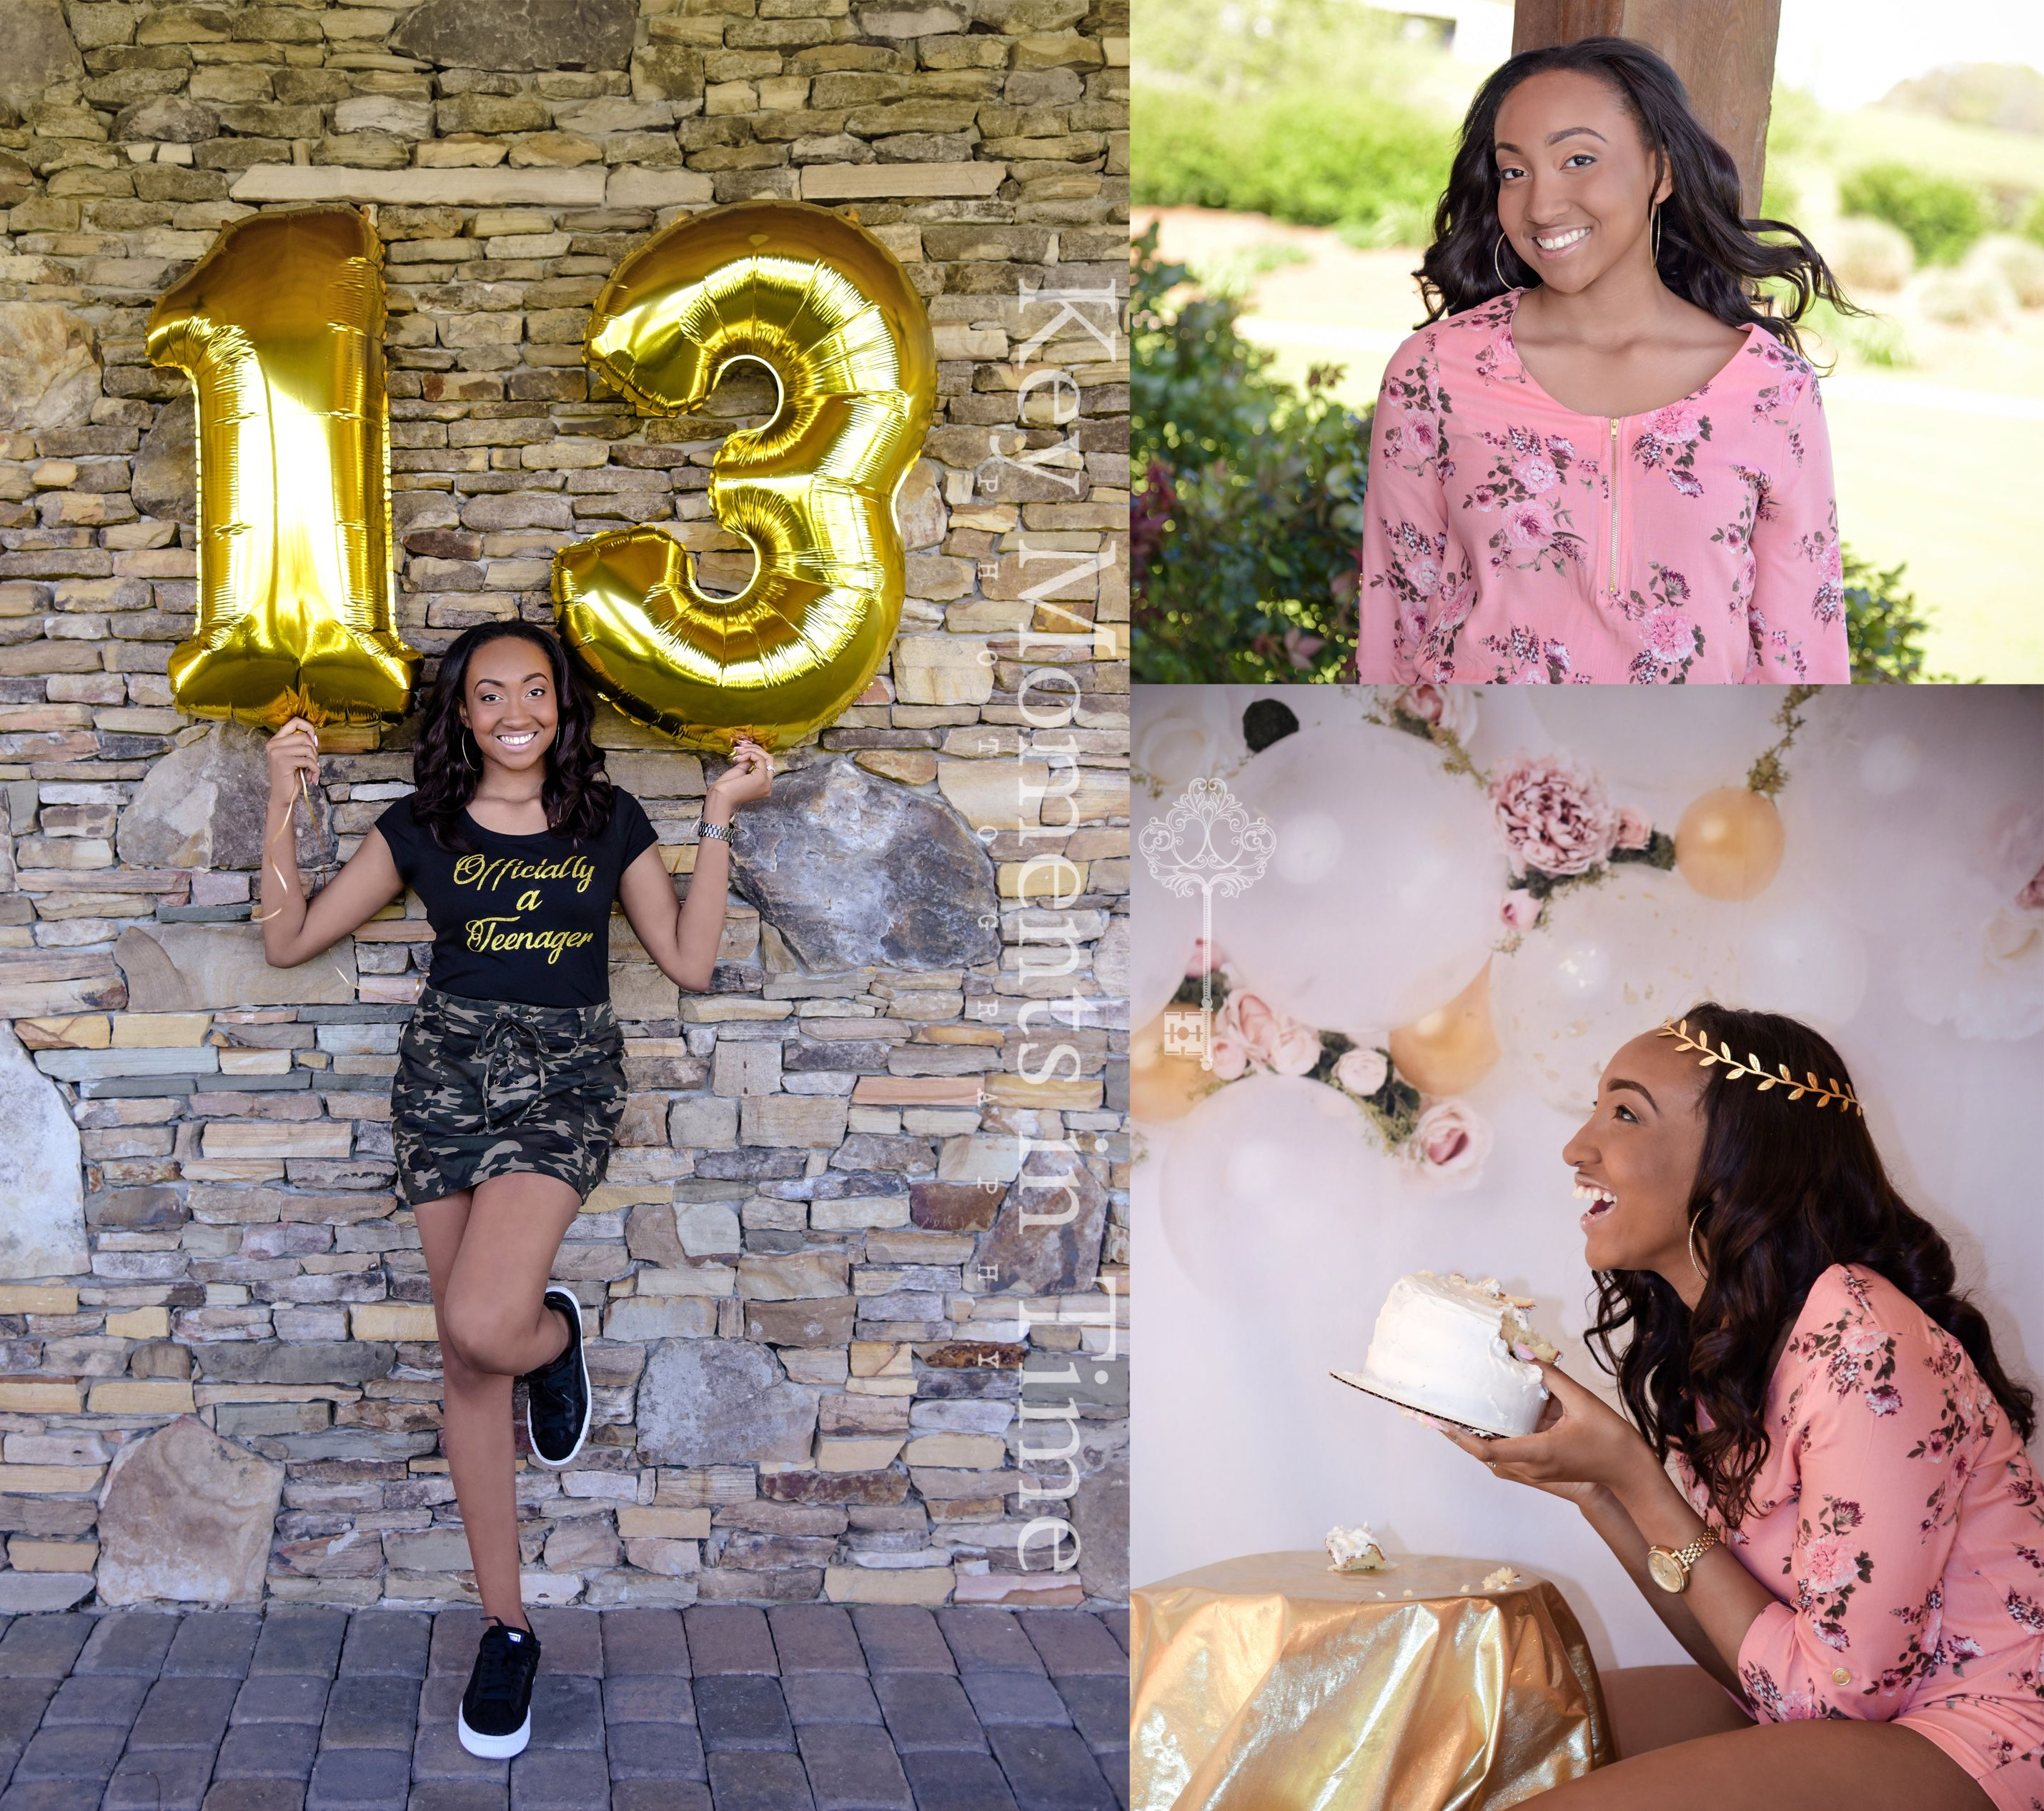 13th Photo Session Officially A Teenager Photo Ideas Black And Gold Photos Idea Teenage Girl Birthday Birthday Photoshoot 13th Birthday Party Ideas For Girls